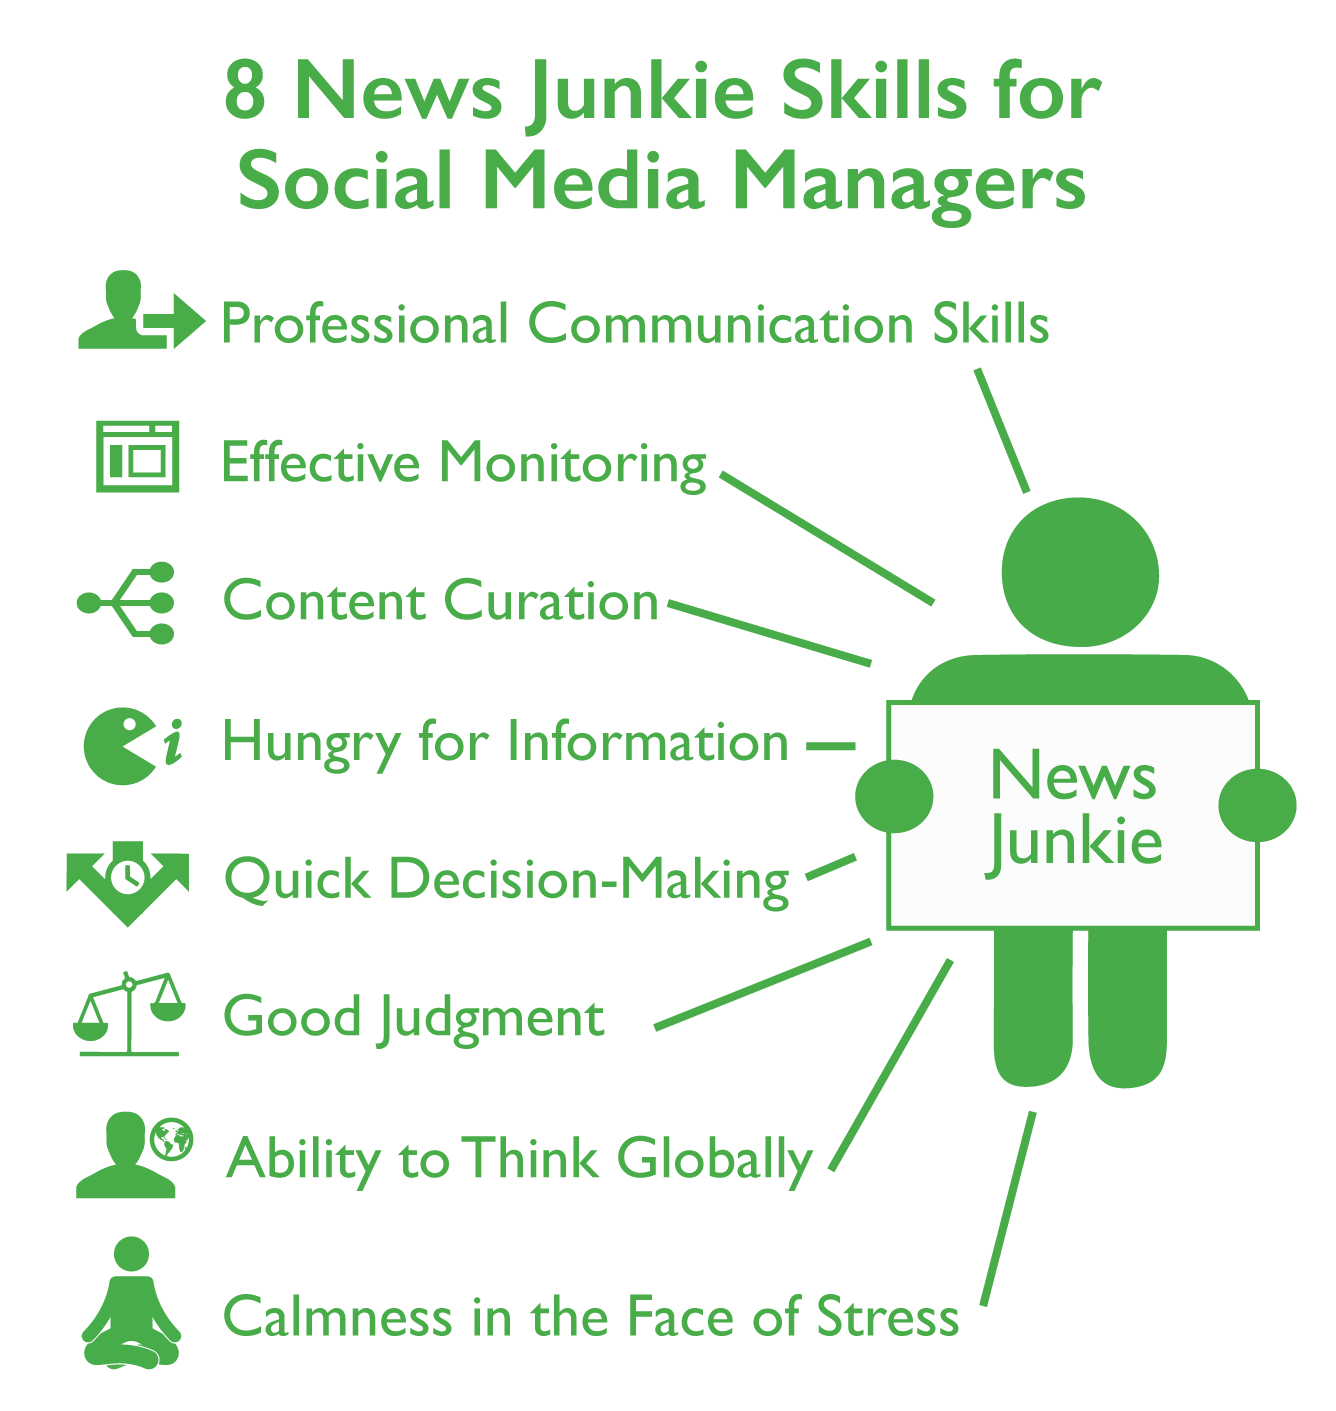 8-news-junkie-skills-for-social-media-managers